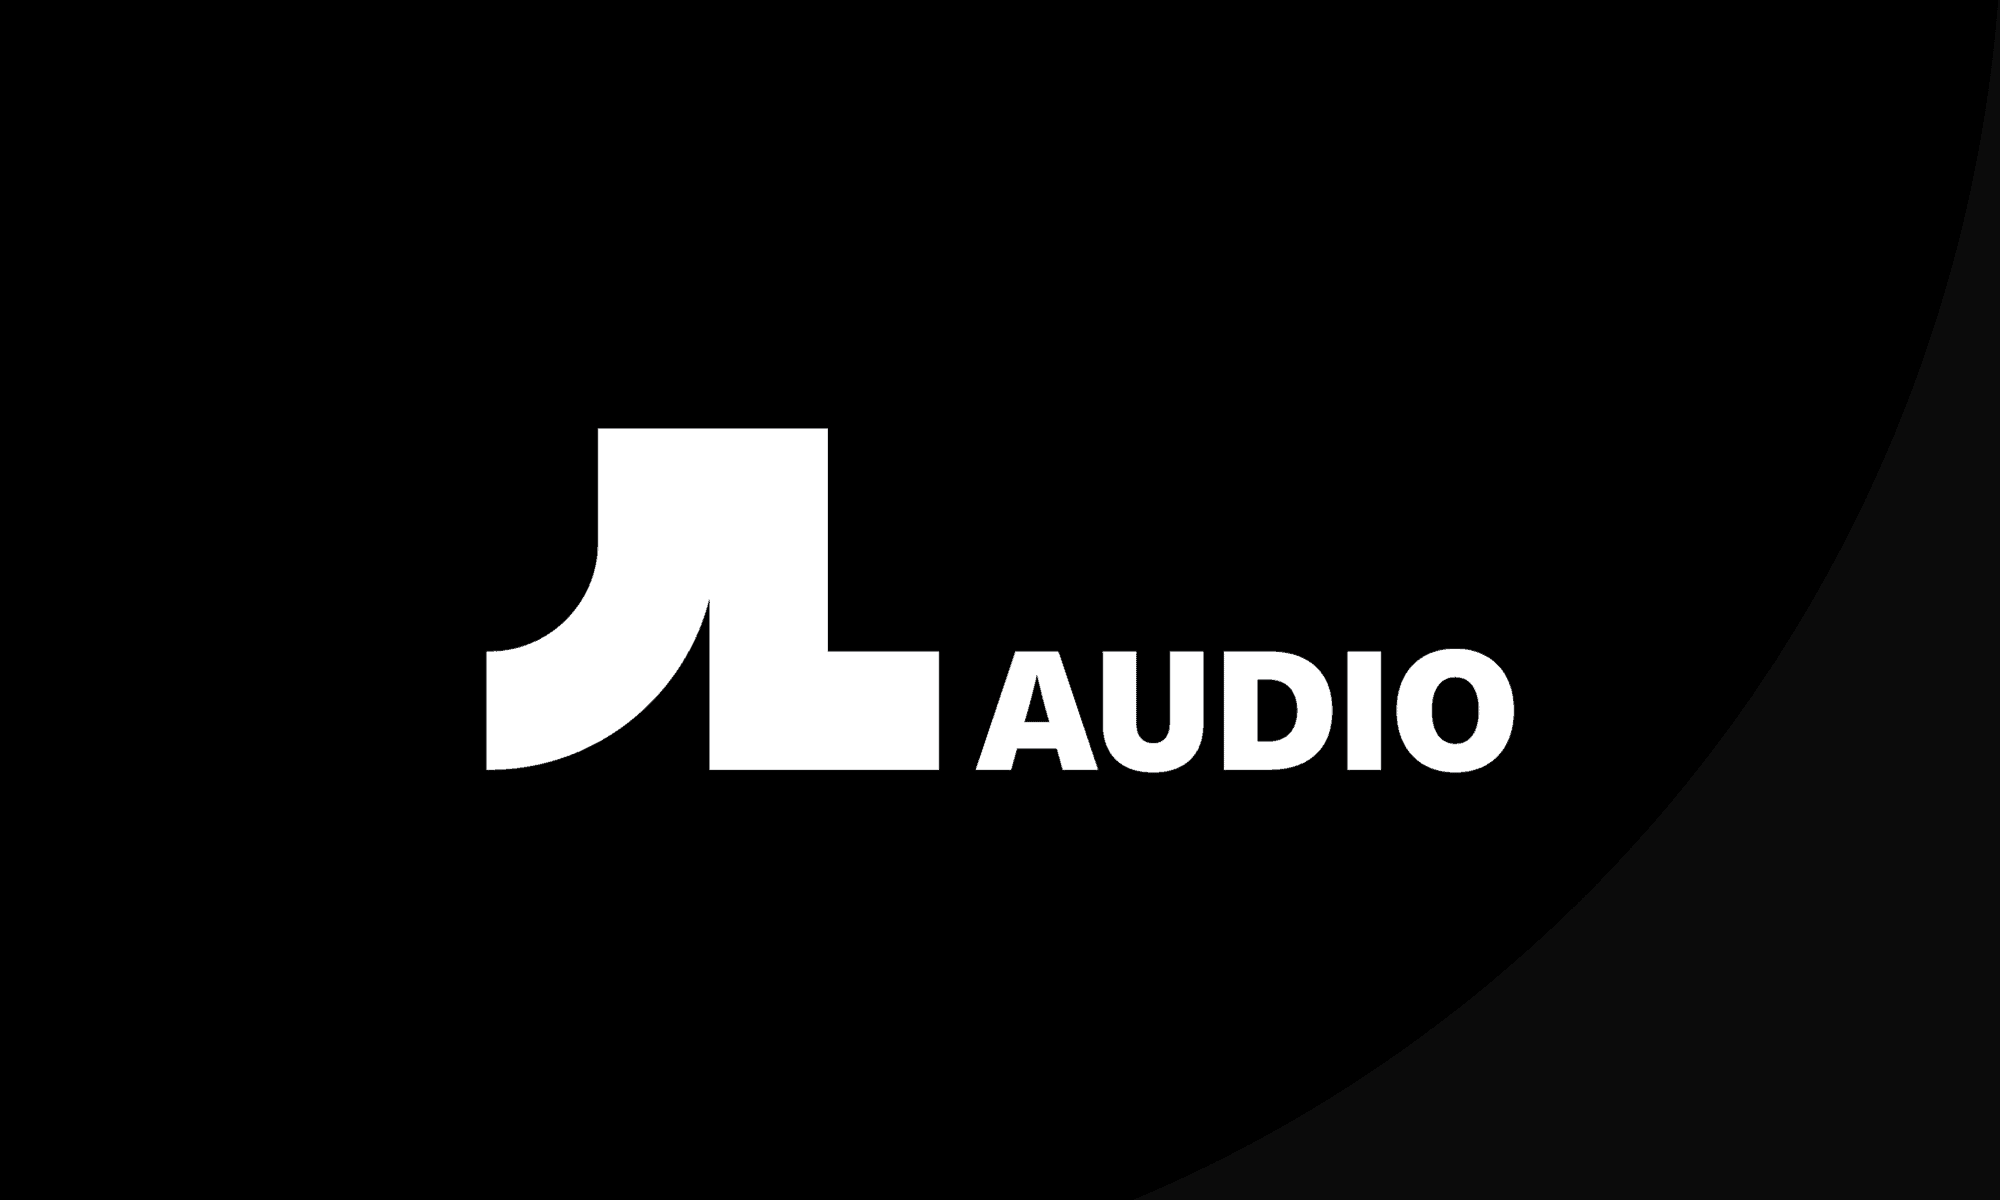 JL Audio Rebranding Dallas Design Co